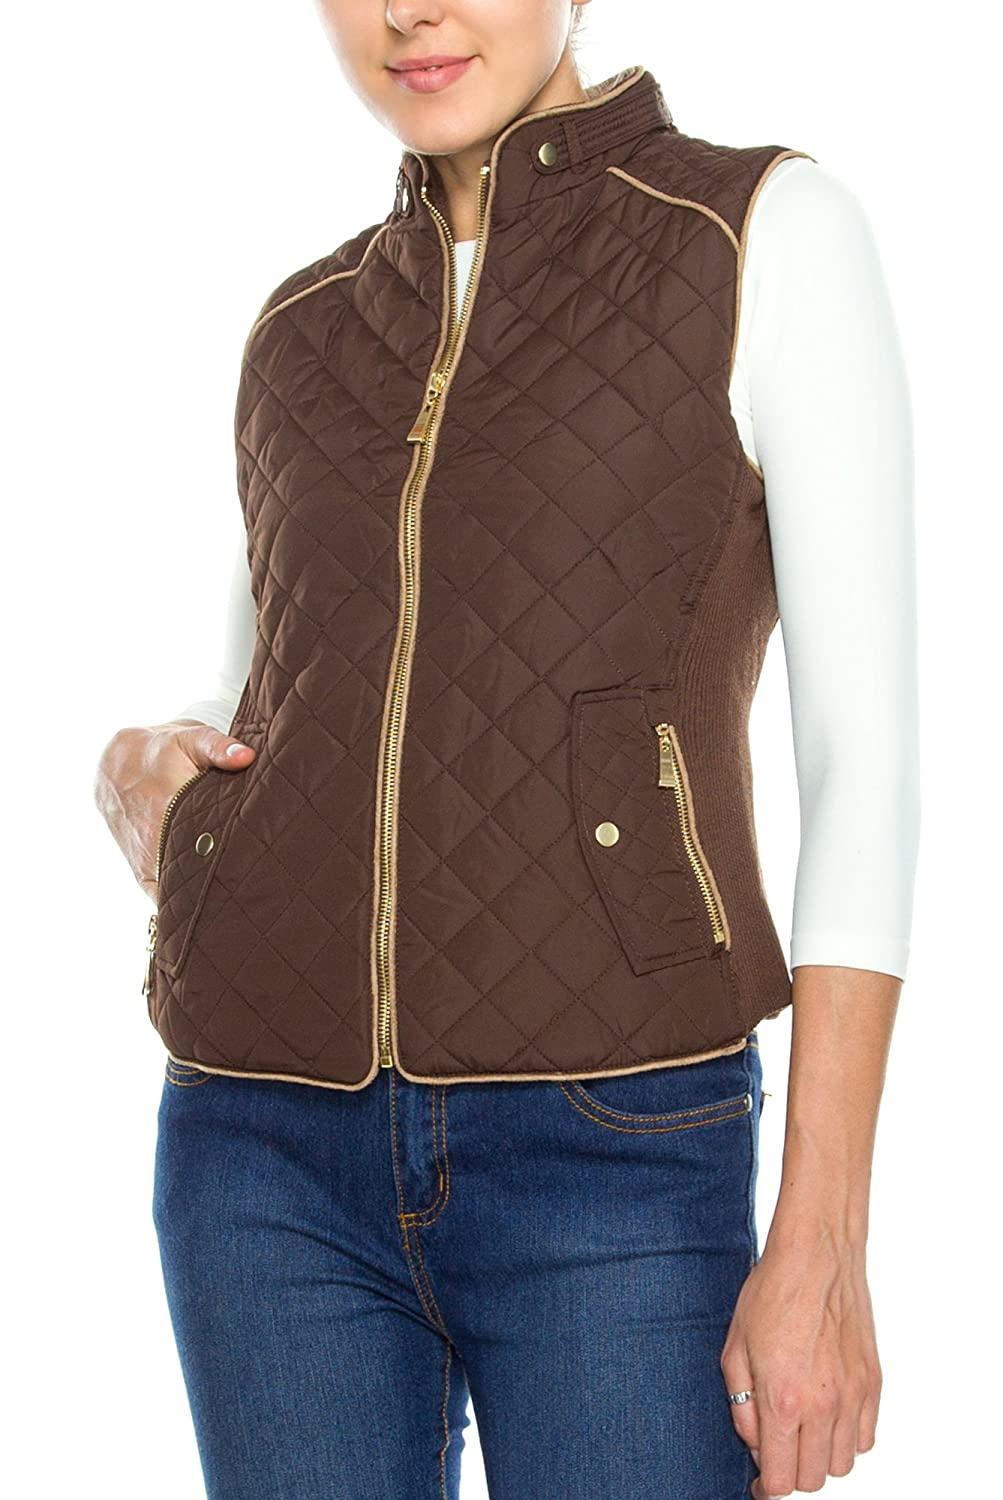 KAYLYN KAYDEN KLKD Women's Quilted Mockneck Side Ribbed Panel Vest A038WOCA1G03